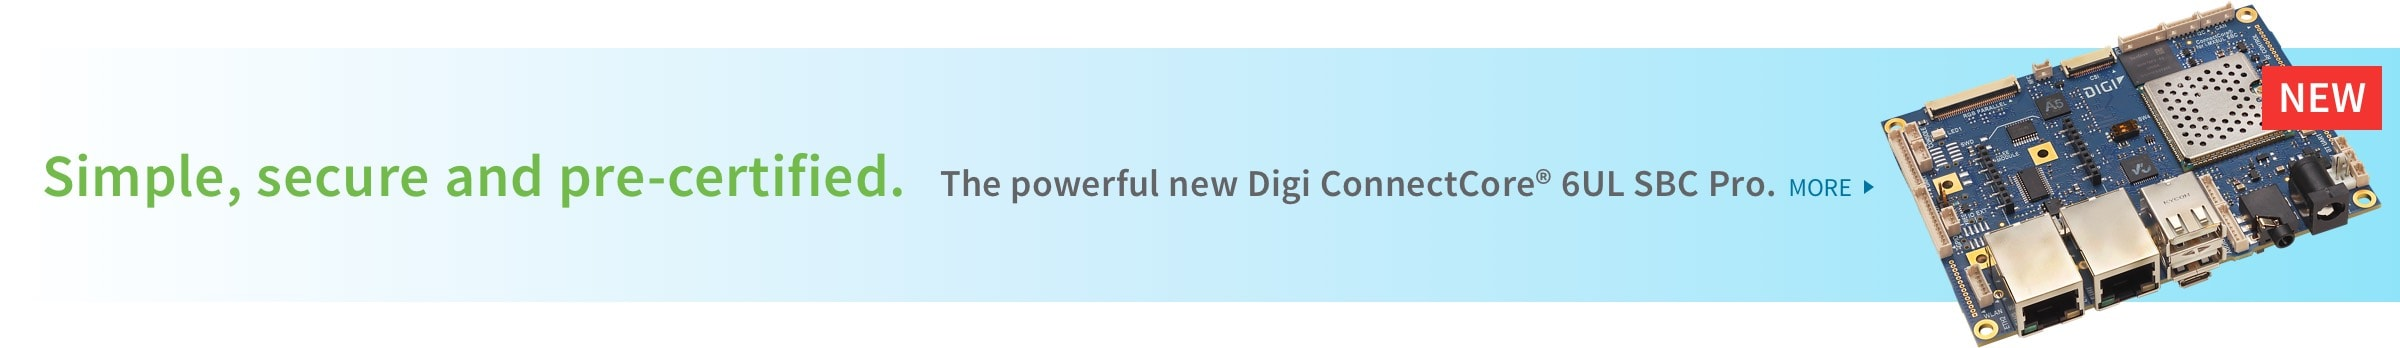 The Powerful new Digi ConnectCore 6UL SBC Pro